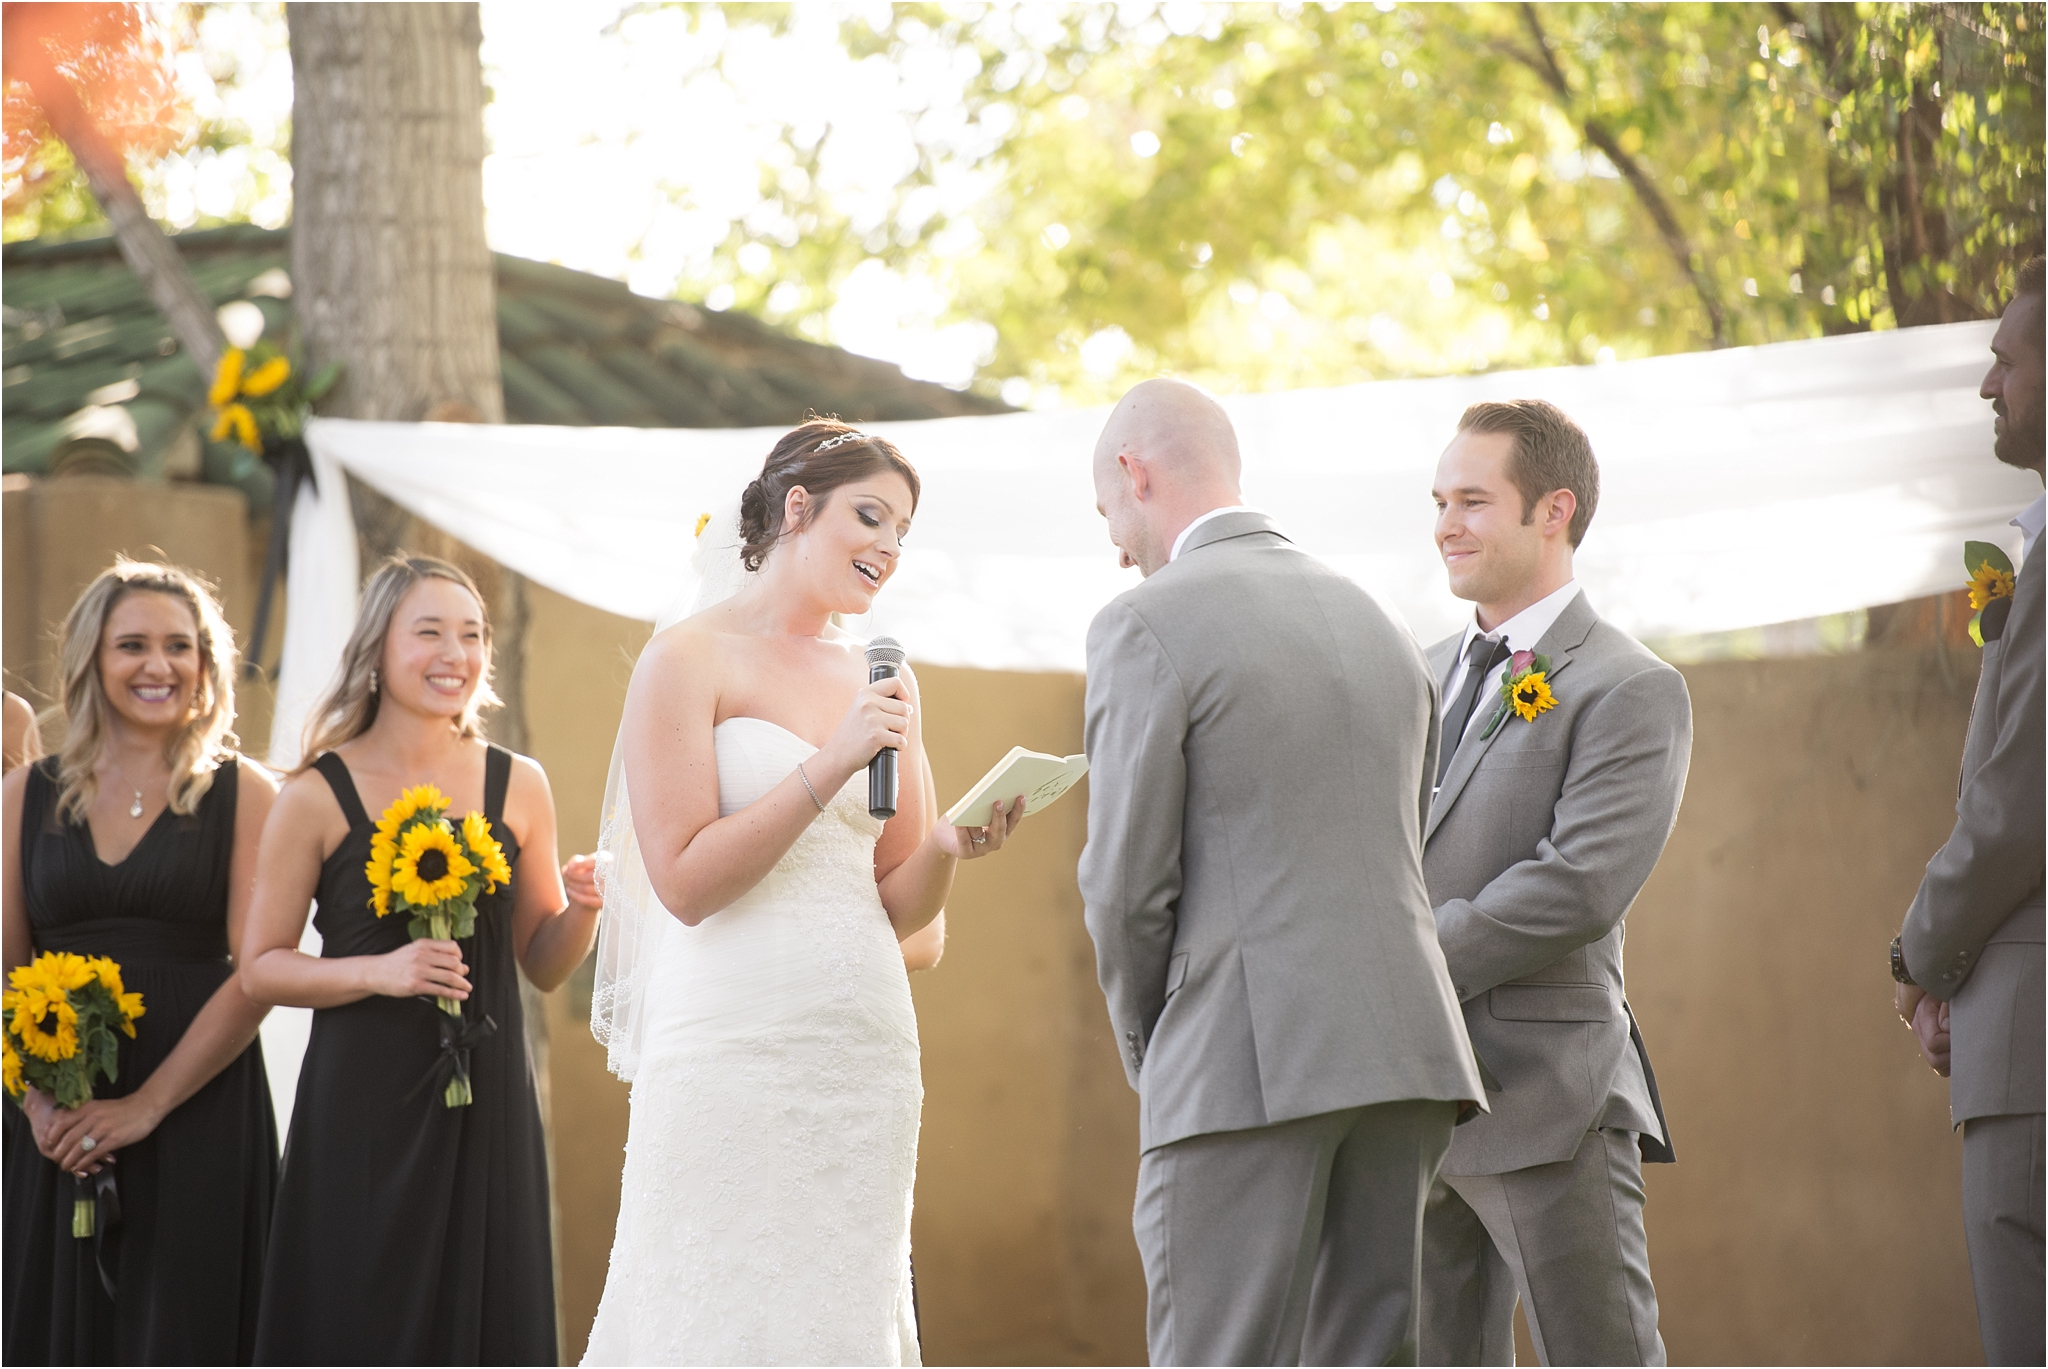 kayla kitts photography - albuquerque wedding photographer - orange september - cjohnson makeup_0034.jpg